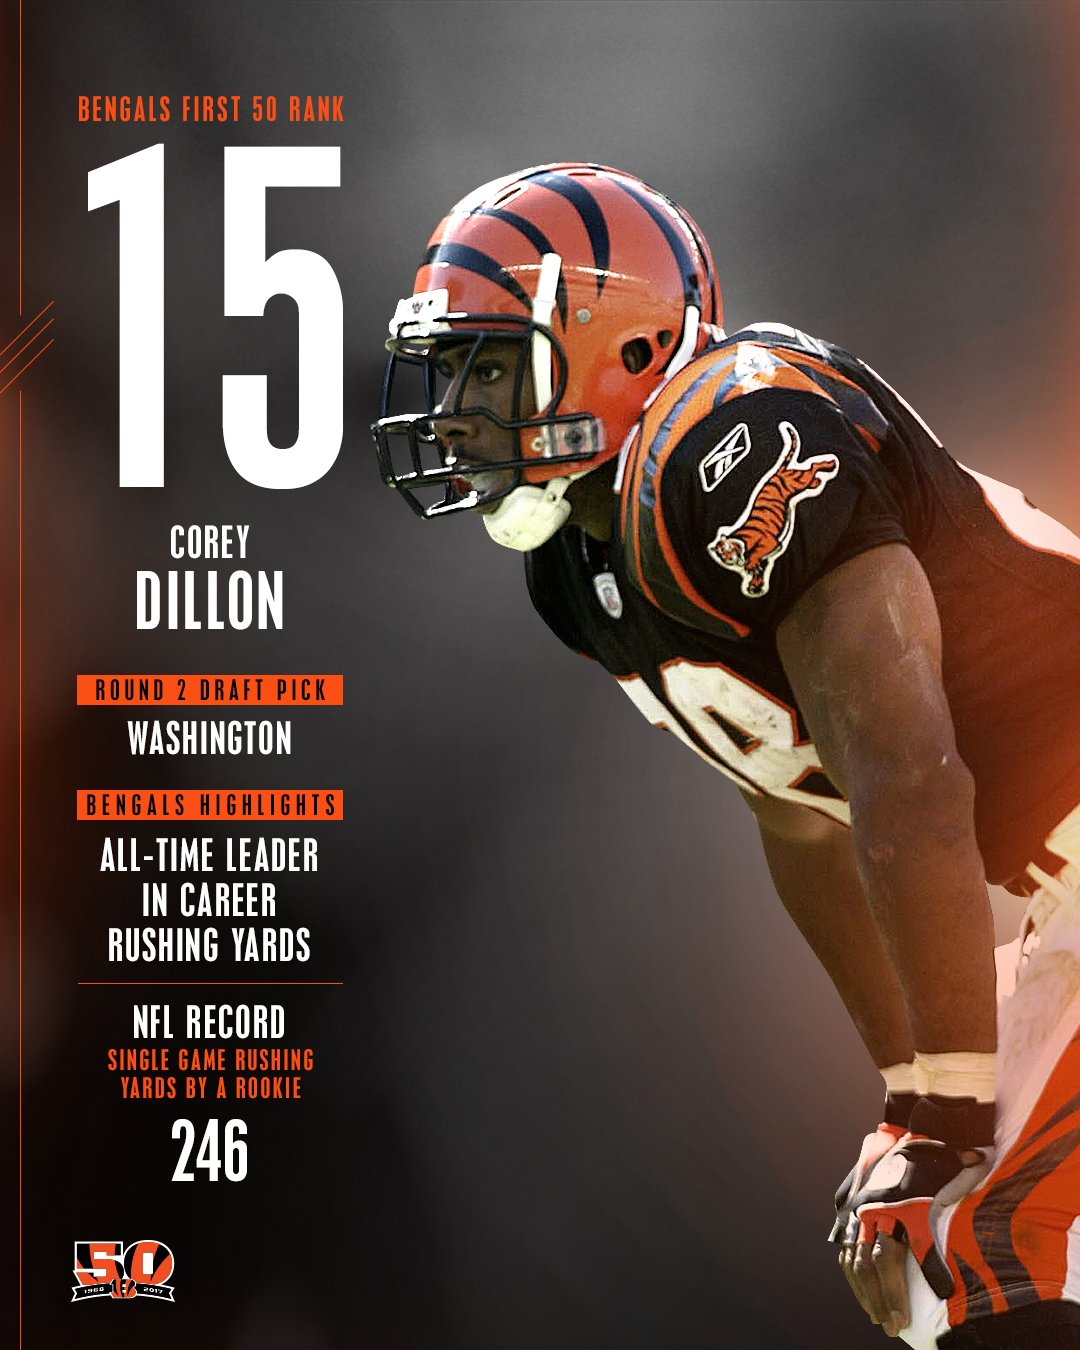 15 days until our 50th Season begins at HOME!  Number 15 on the #Bengals First 50: Corey Dillon  #Bengals50 https://t.co/wY6p7jEff6